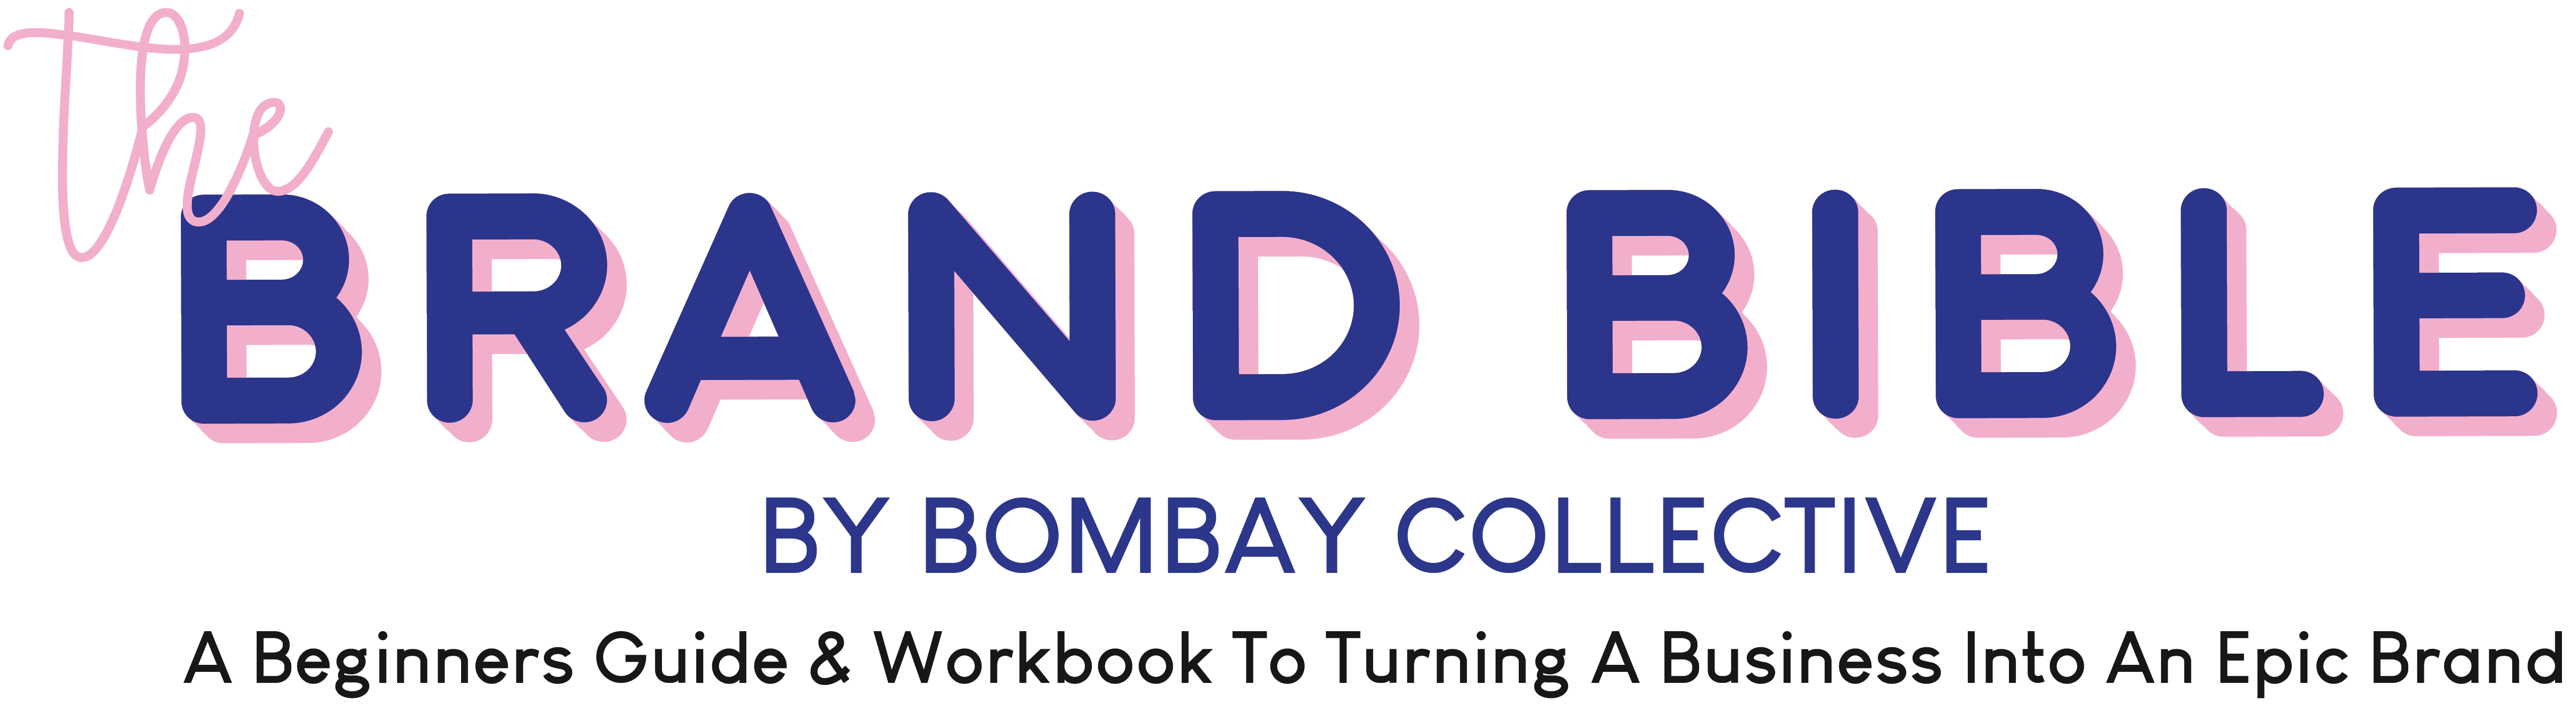 The Brand Bible by Bombay Collective An Action Guide & Workbook to Turning a Business into an Epic Brand Logo